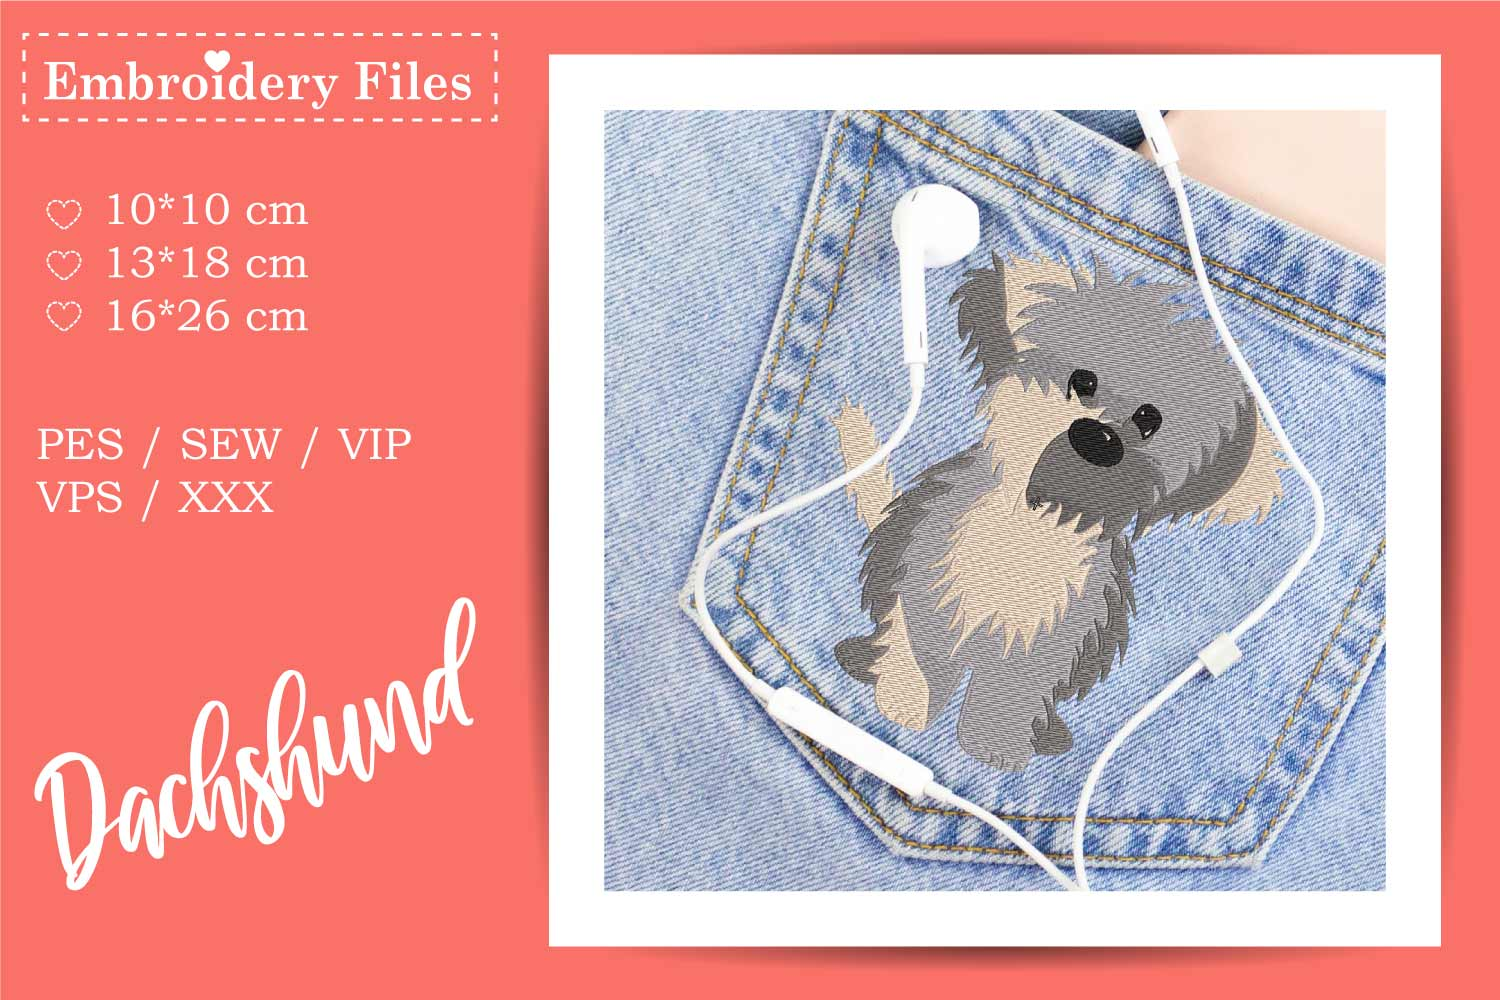 Cute little Dog - Embroidery File for Beginners example image 3